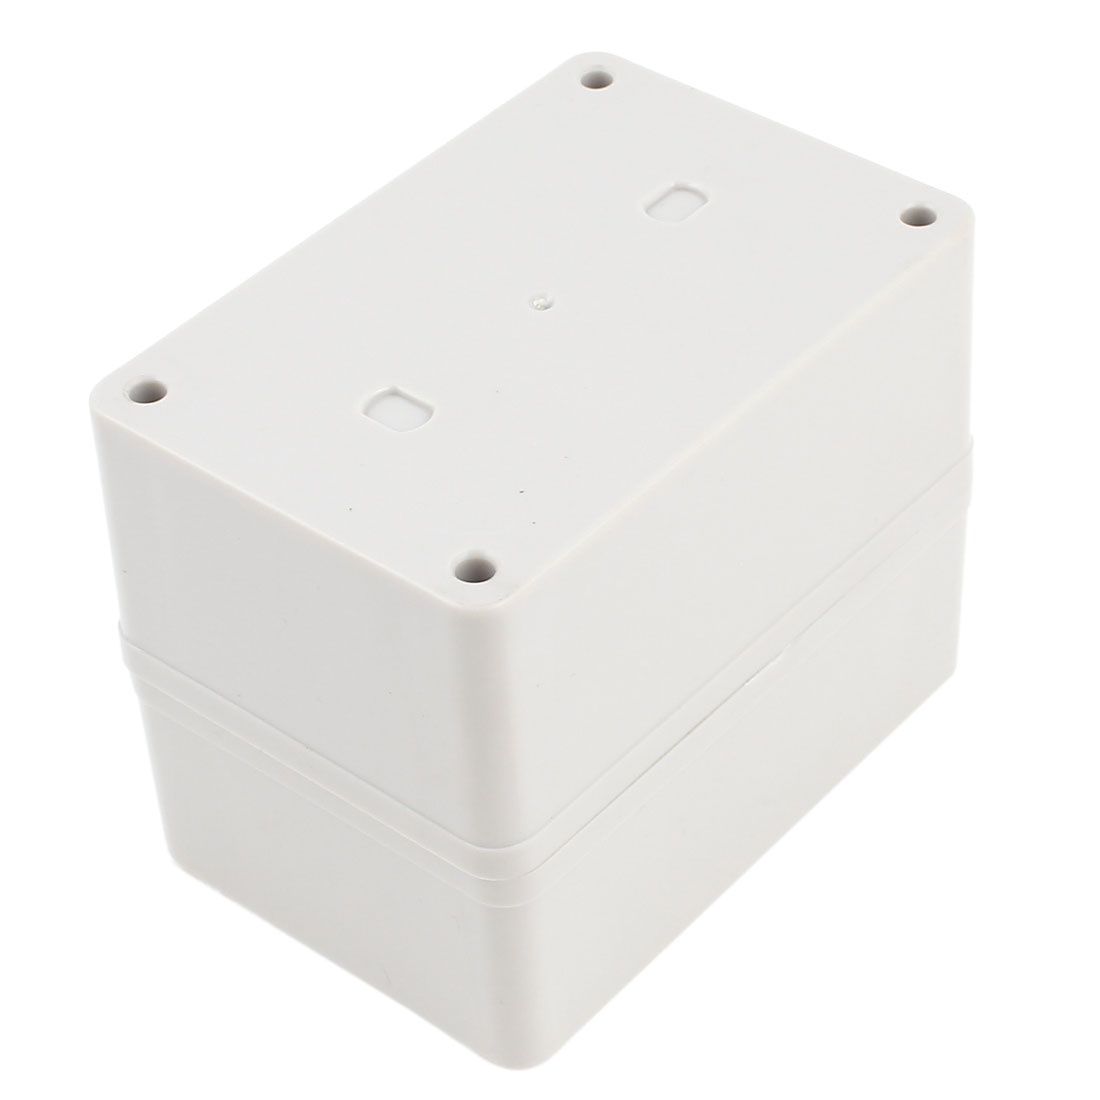 95mm x 65mm x 75mm Dustproof IP65 Plastic DIY Junction Box Power Protection Case